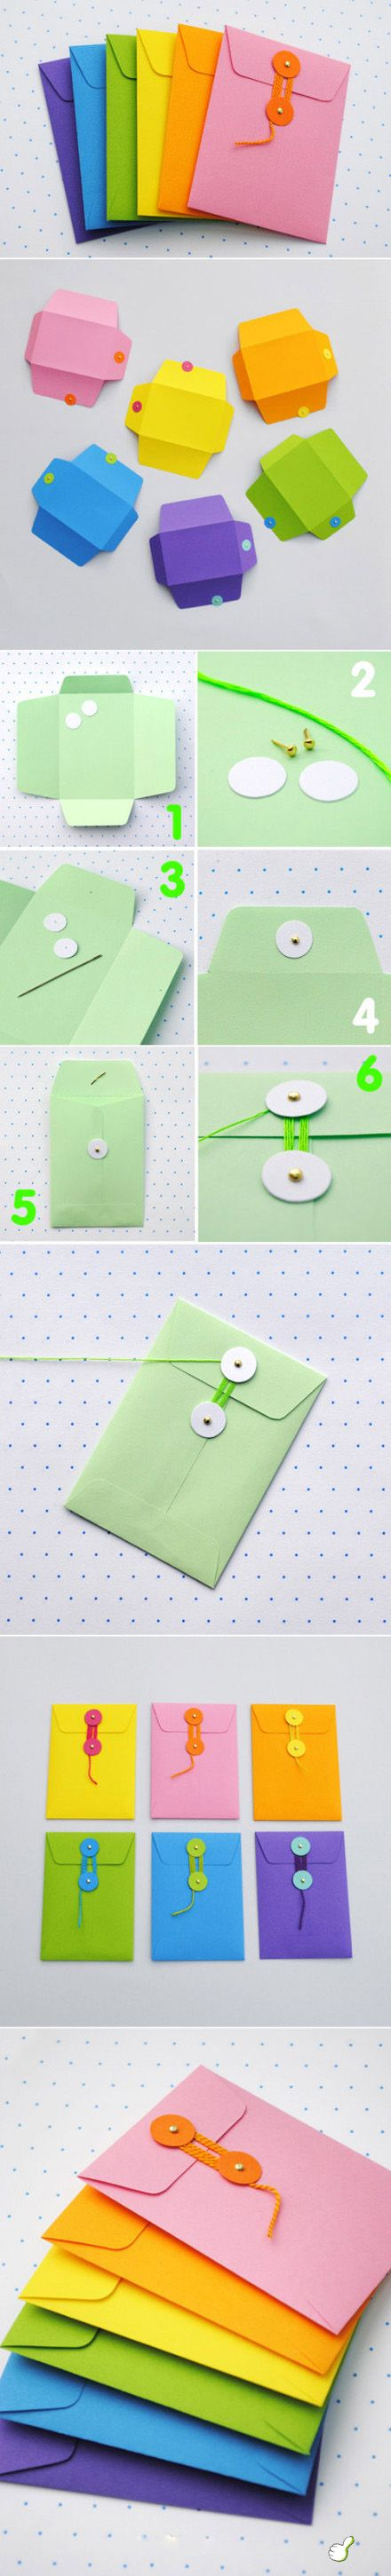 DIY Envelopes diy craft crafts easy crafts craft idea diy ideas home diy easy…